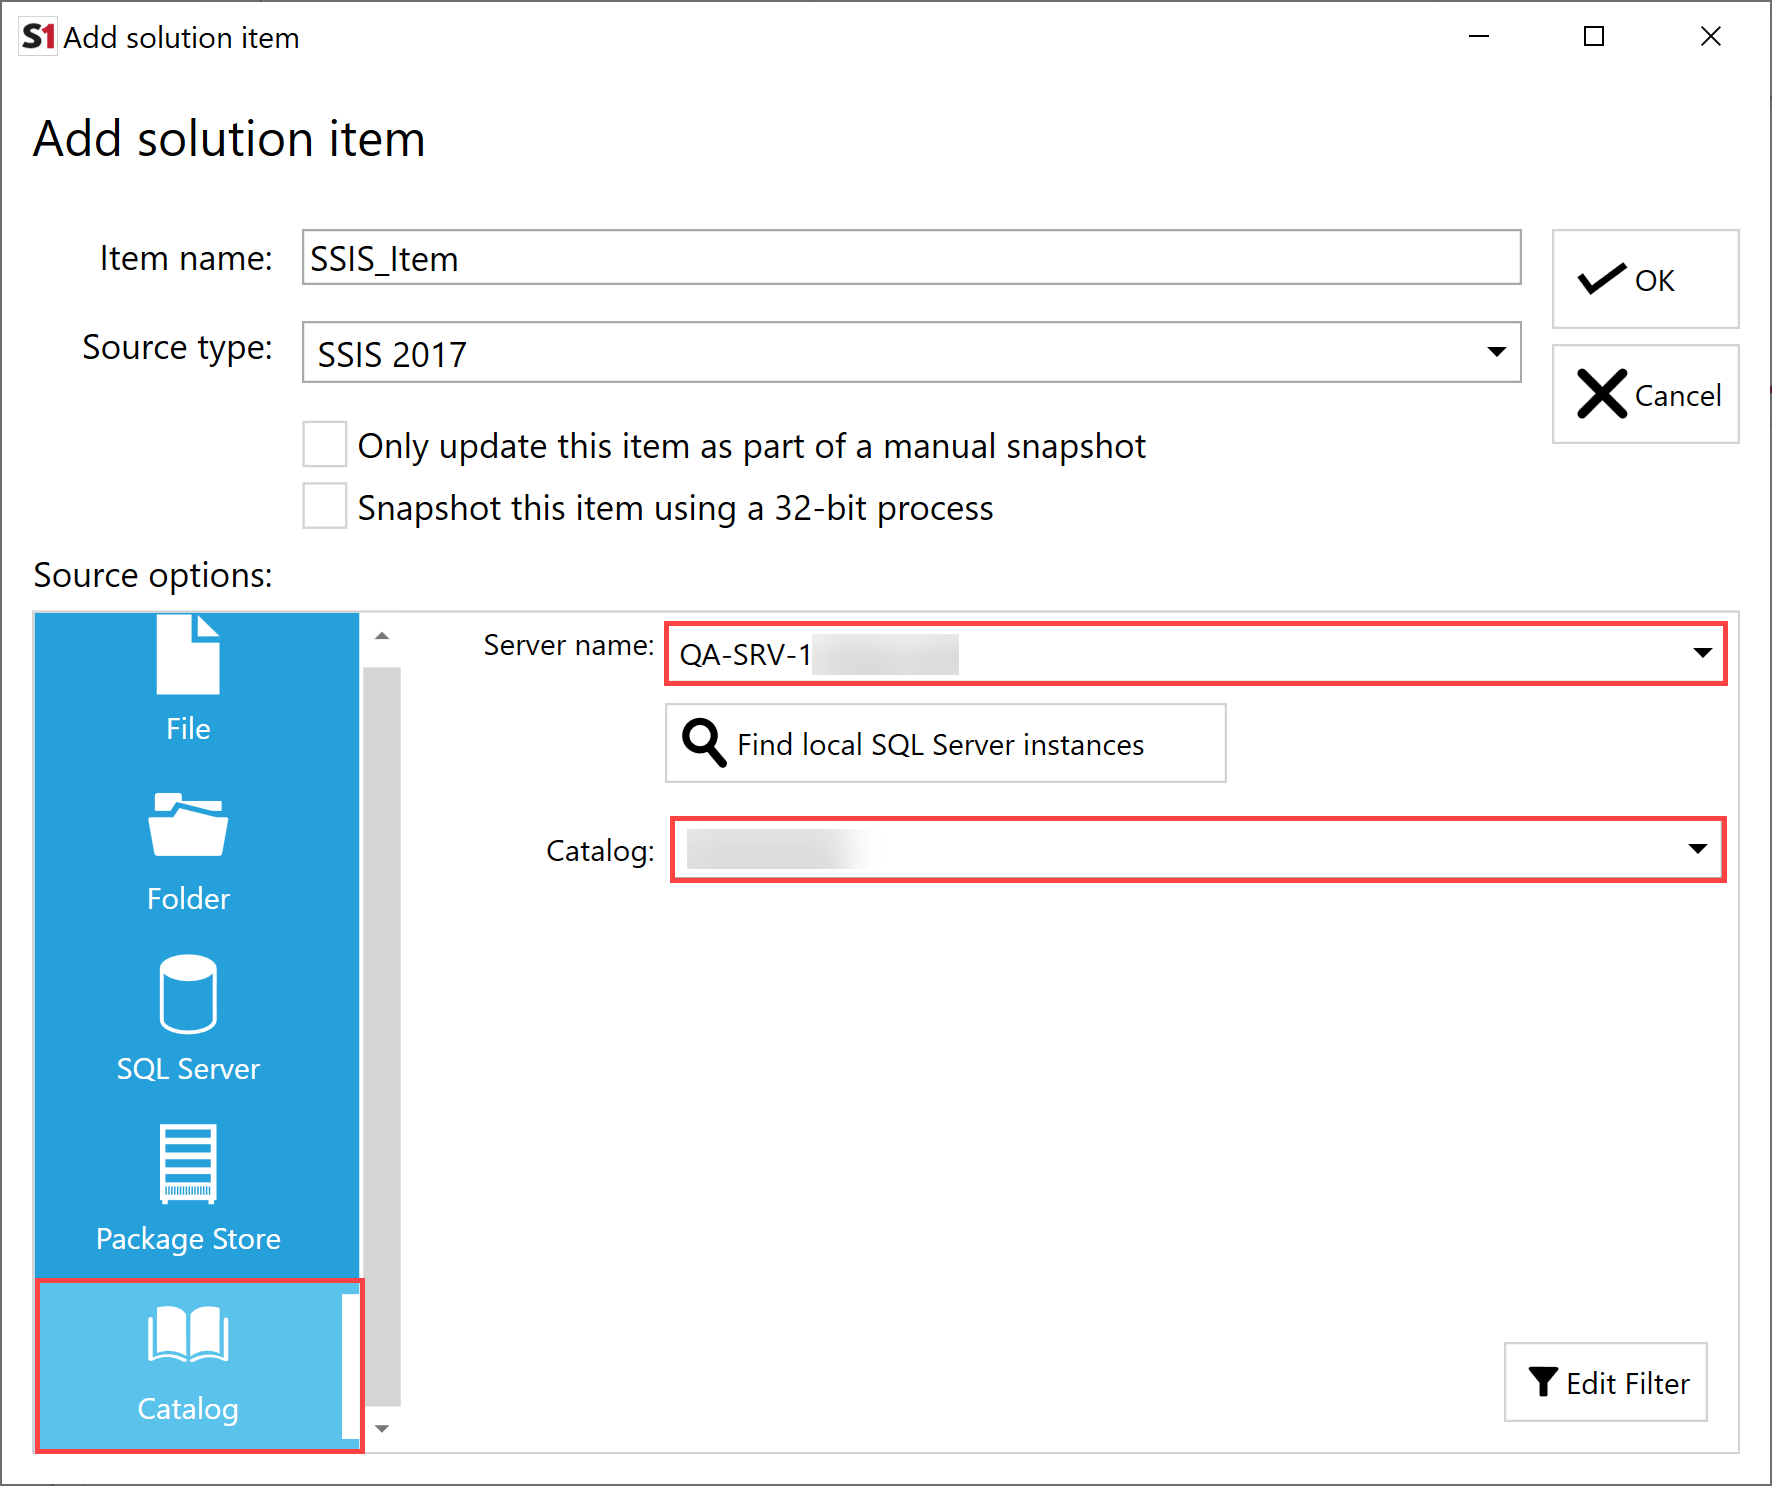 SentryOne Document Add Solution Item SSIS Catalog